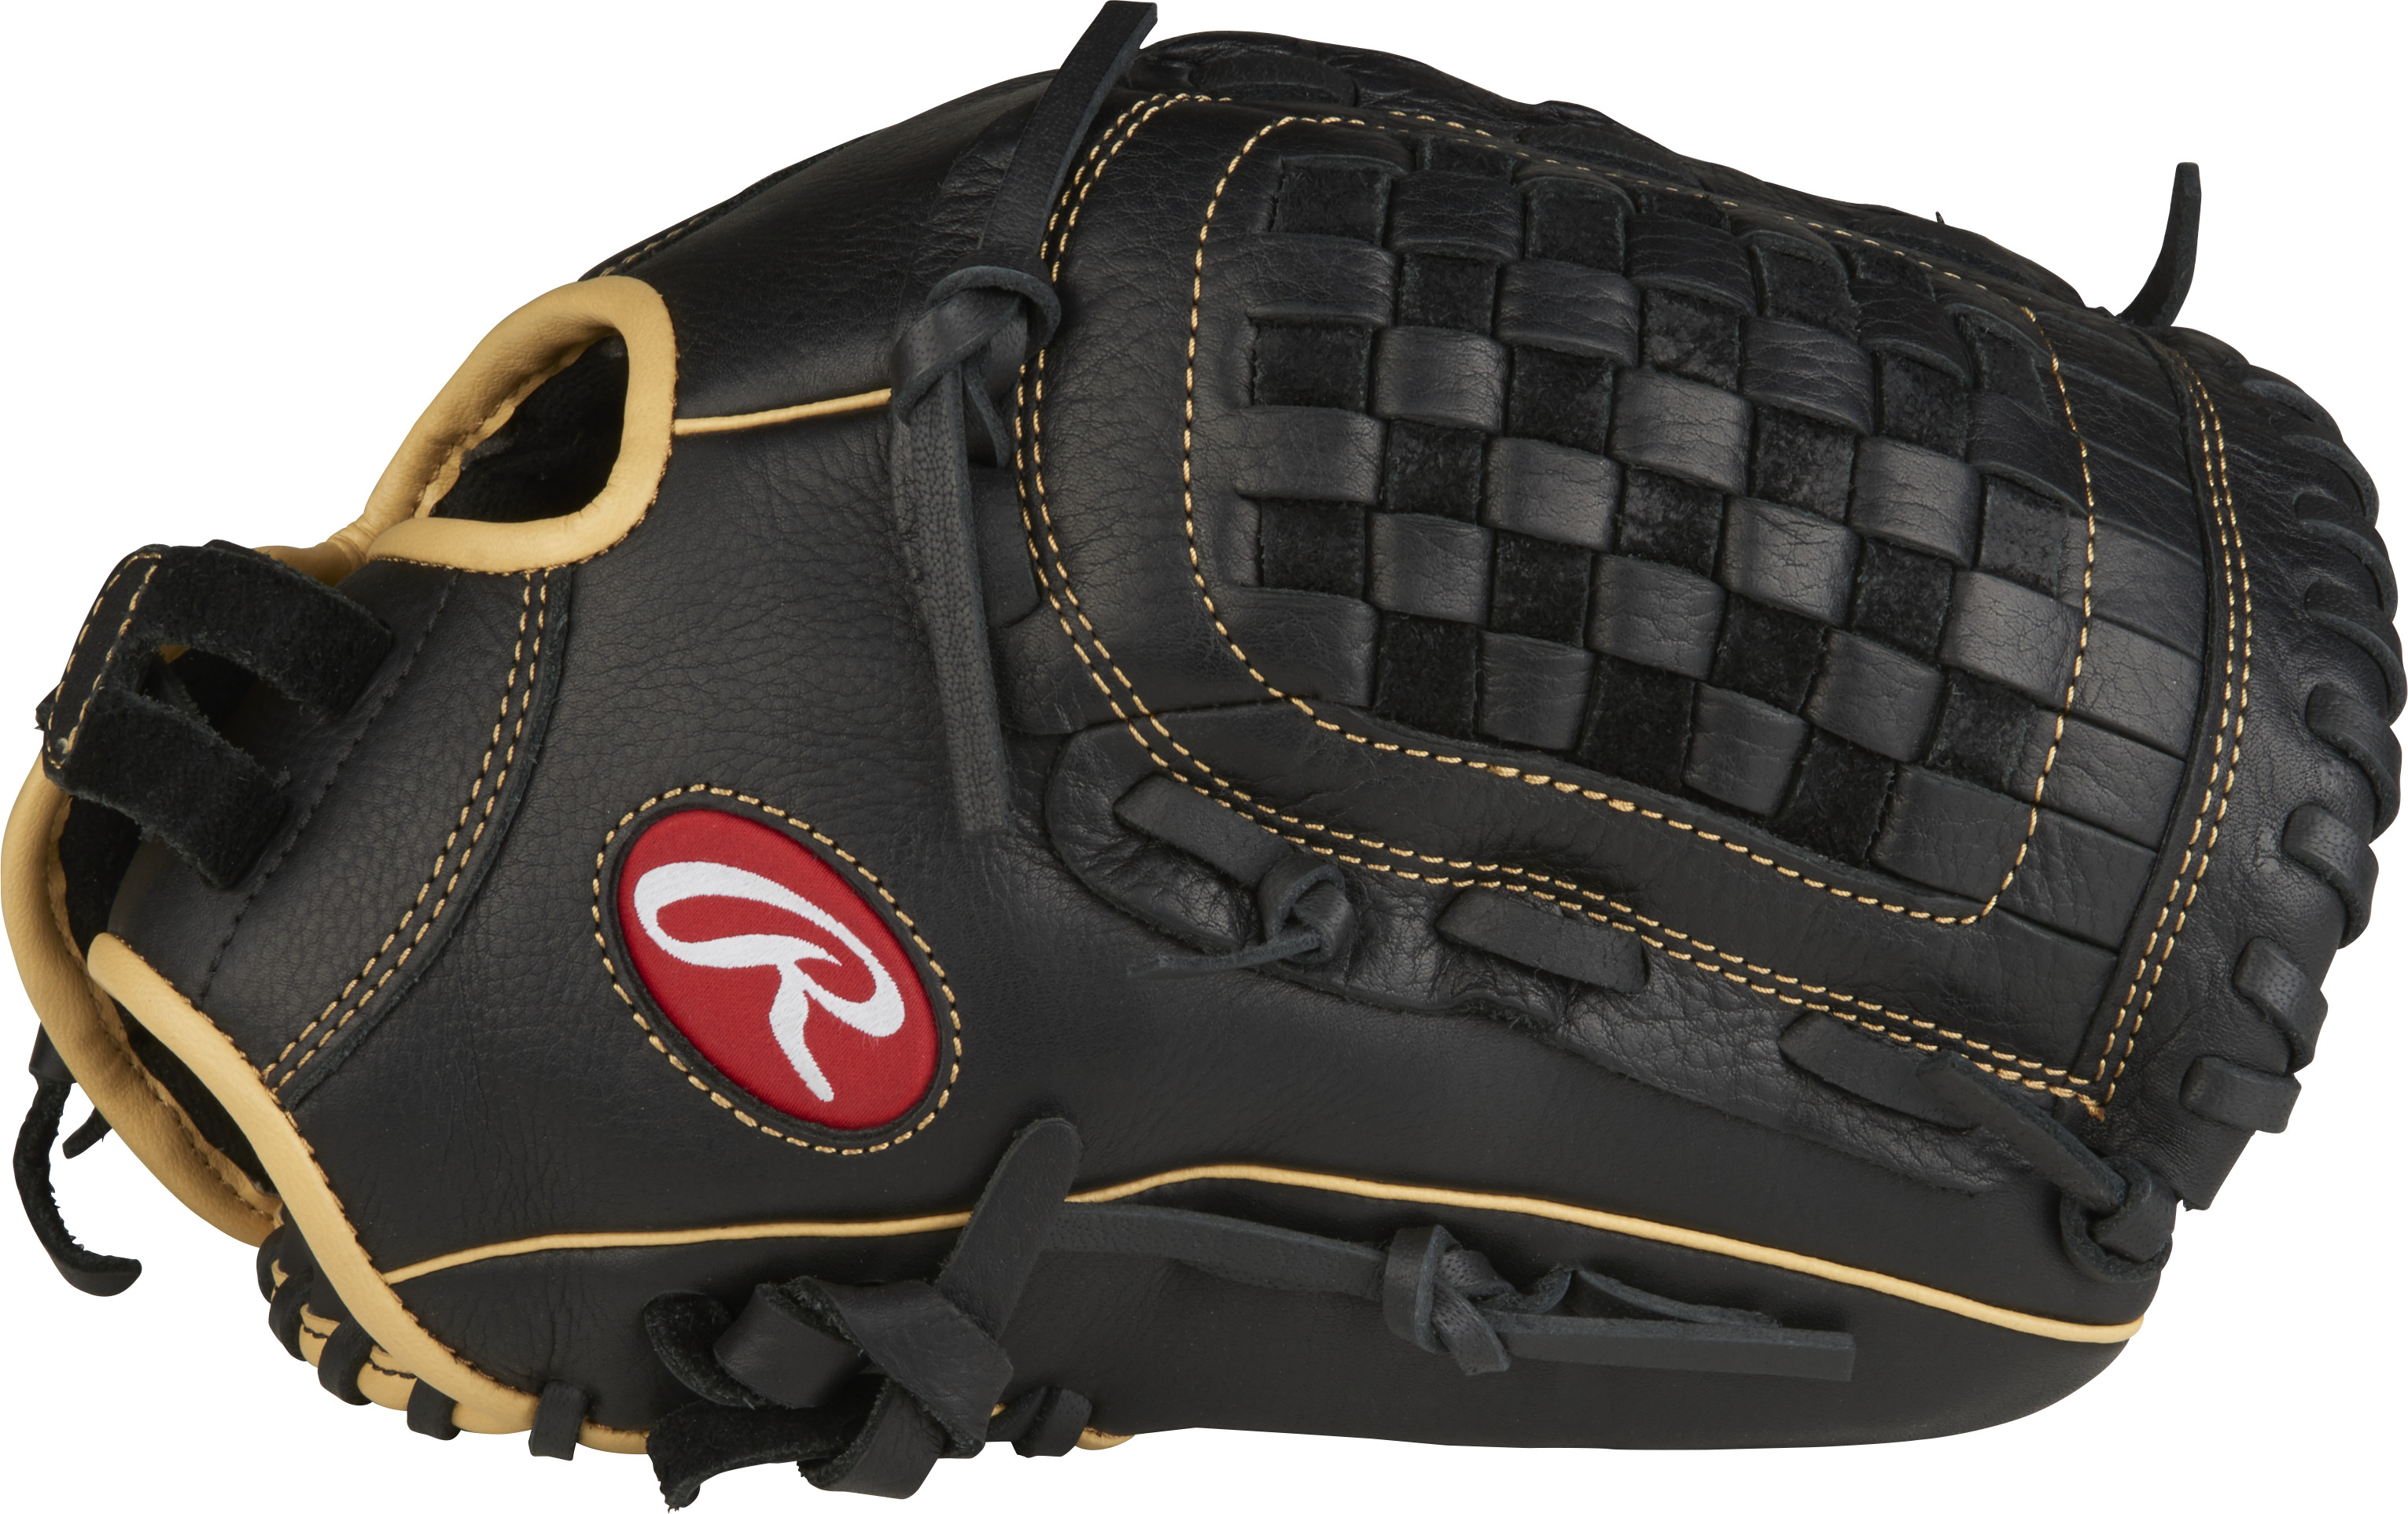 http://www.bestbatdeals.com/images/gloves/rawlings/RSO125BCCF-3.jpg